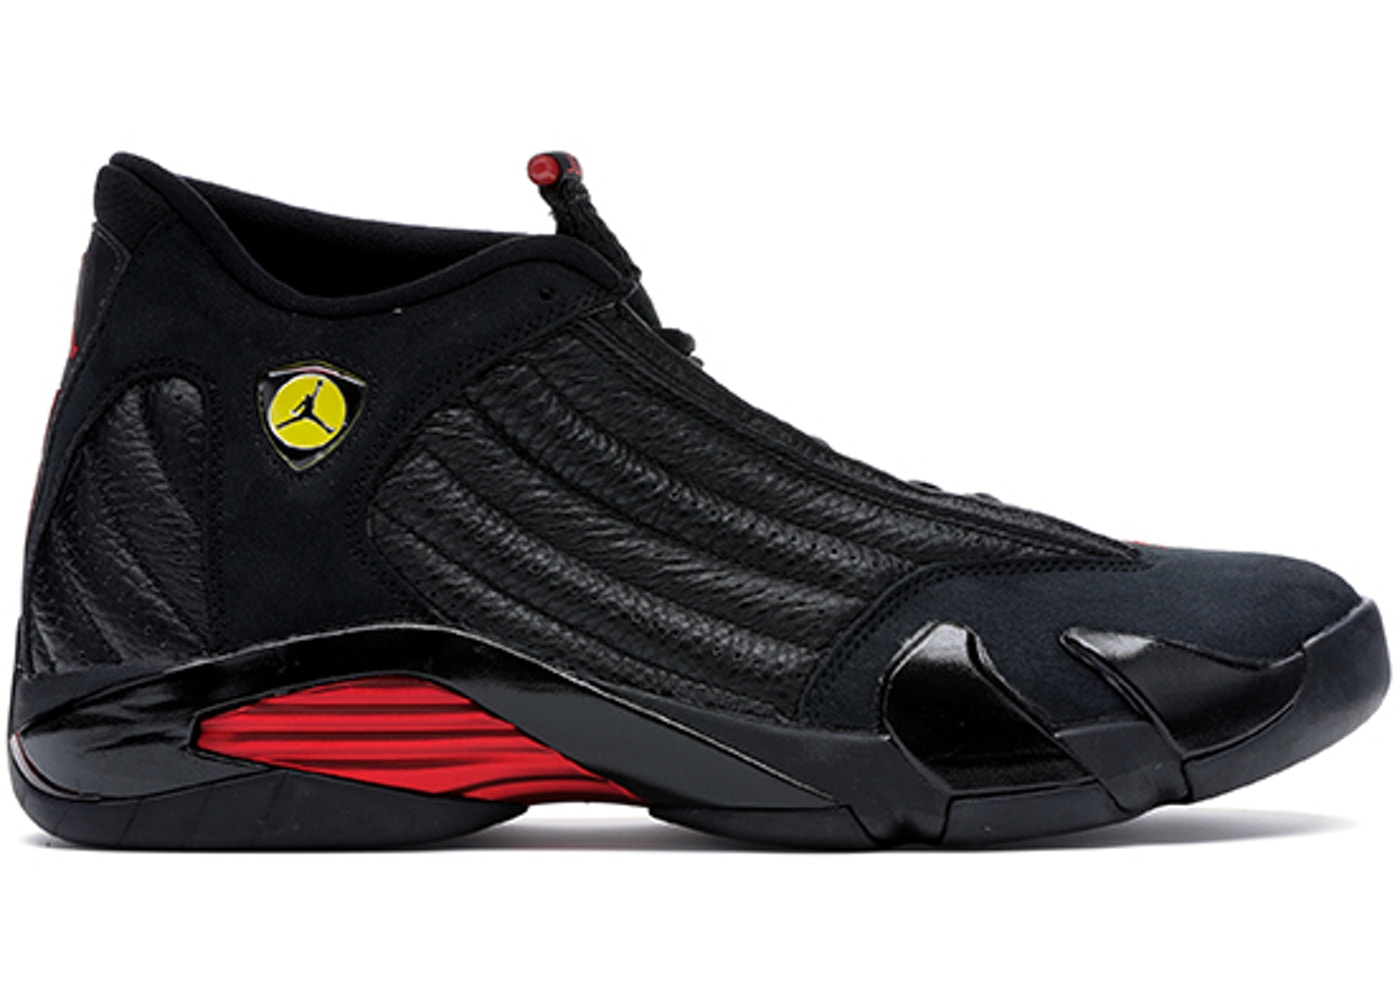 super popular 0618c 2afd7 Jordan 14 Retro Last Shot (2018) - 487471-003